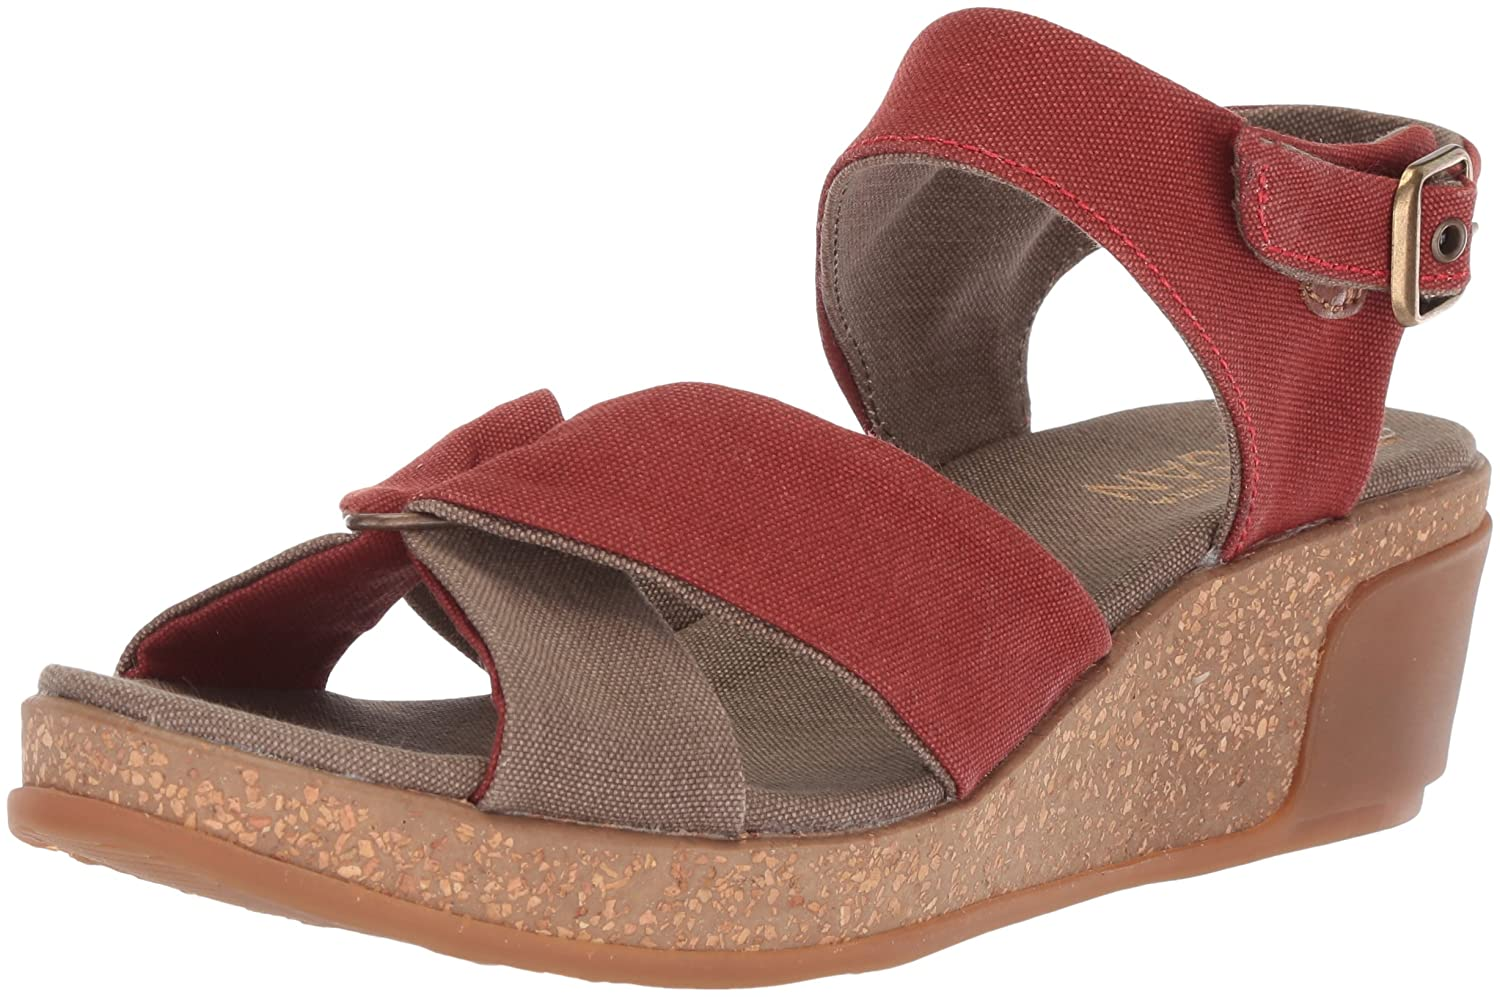 El Naturalista Women's N5007t Seaweed Canvas Caldera/Leaves Wedge Sandal B075LH2JB2 37 Medium EU (7 US)|Caldera